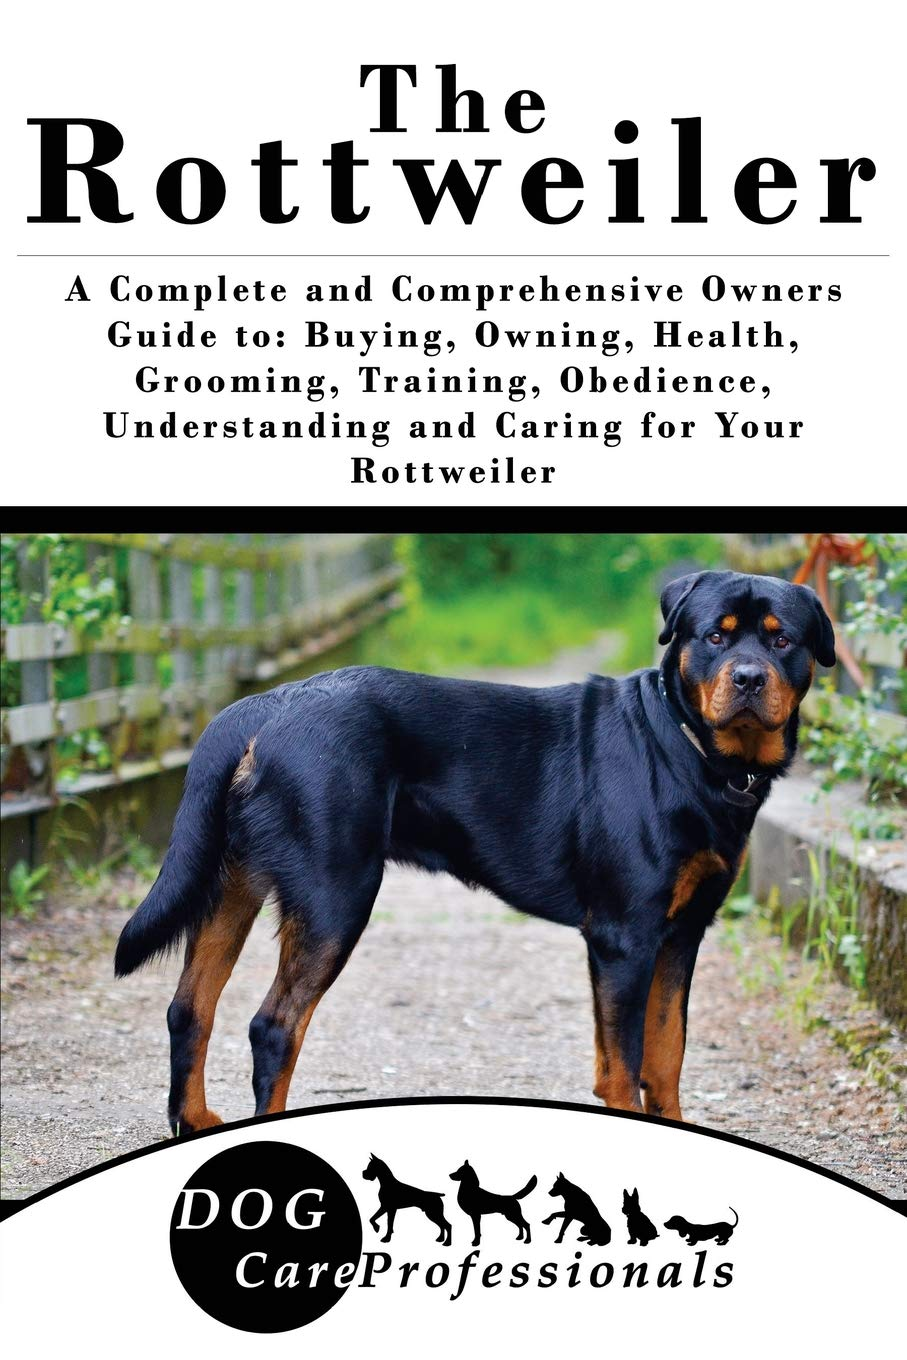 Strengthen your bond with your canine companion